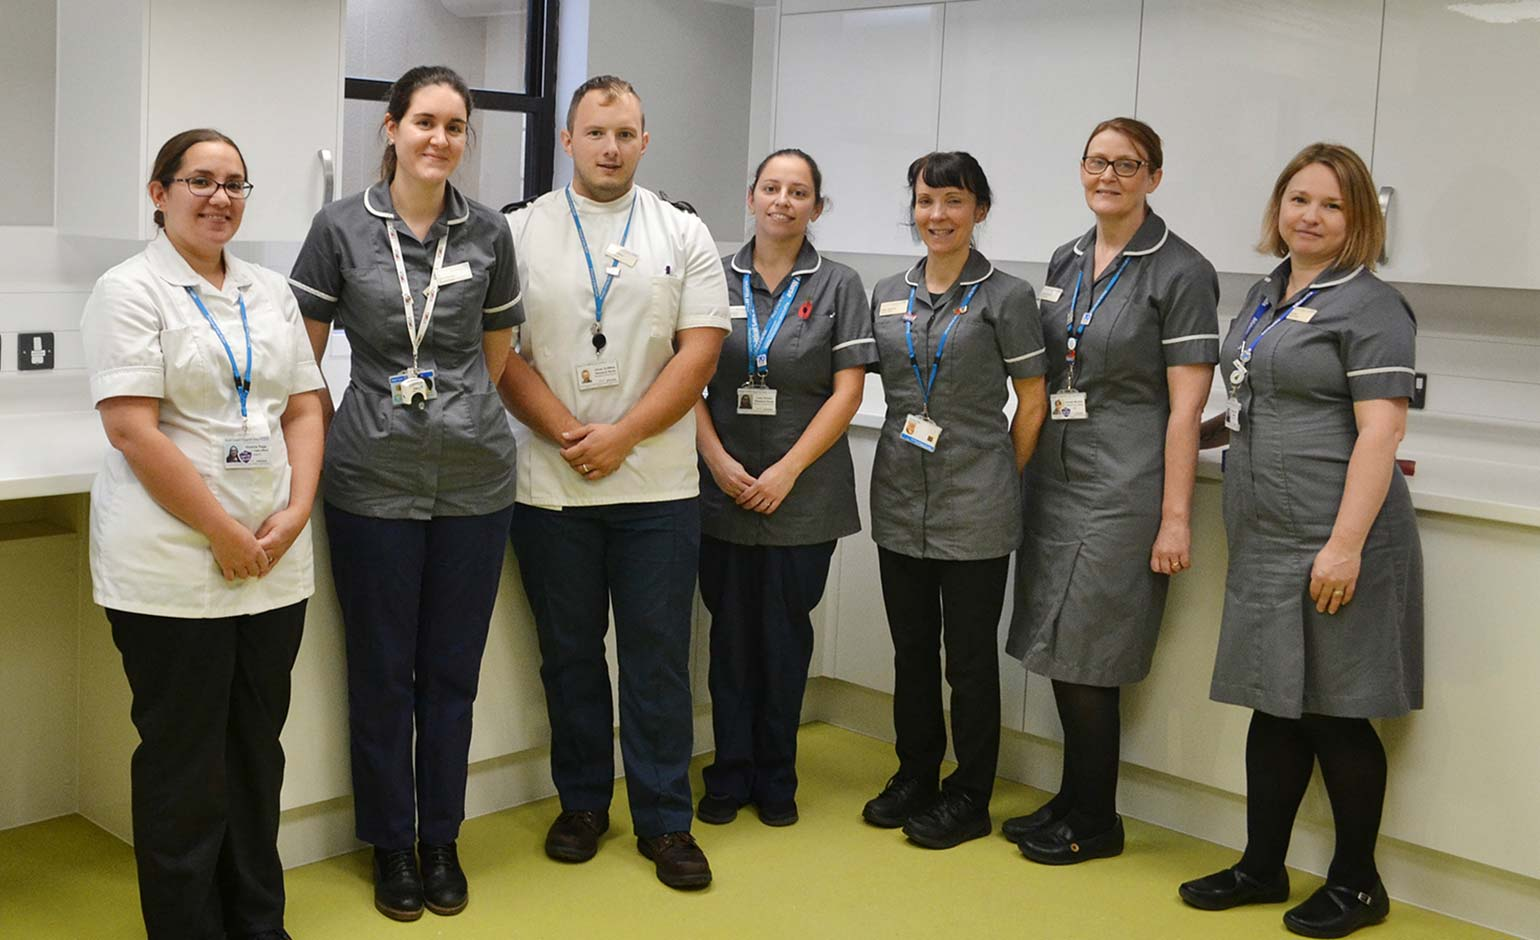 New research and clinical trials centre opens at the Royal United Hospital